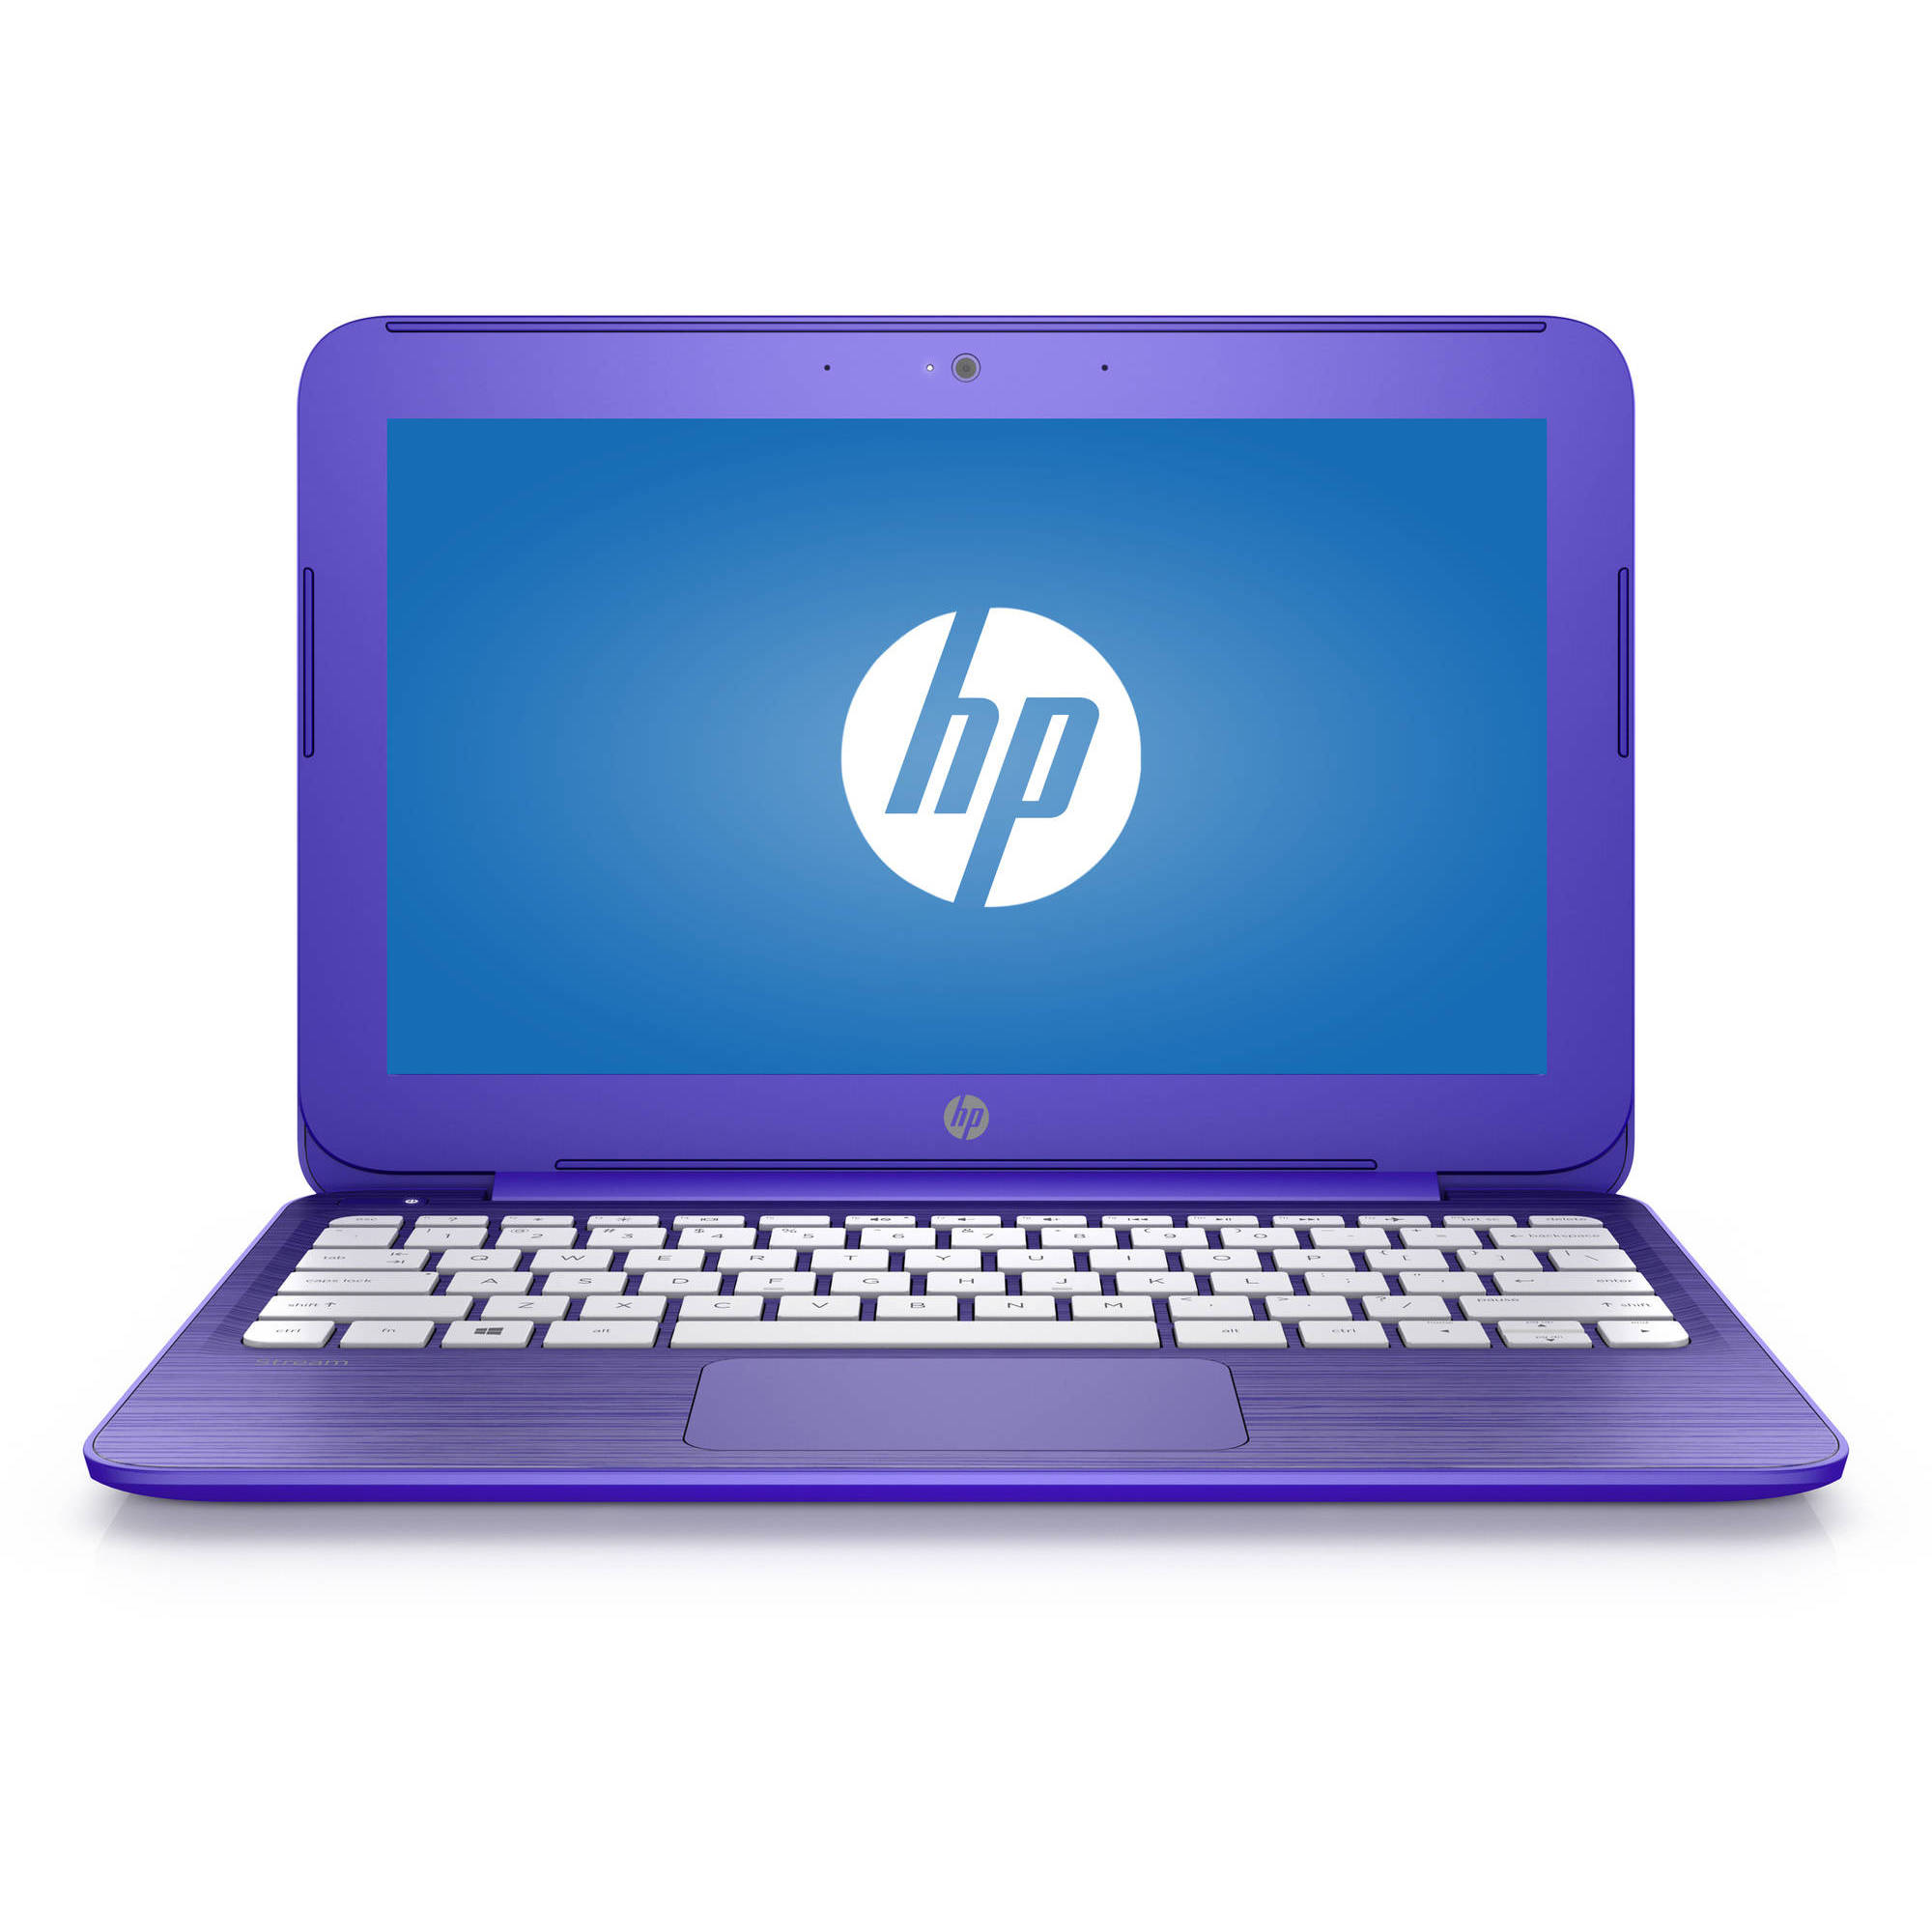 "Refurbished HP 11"" Stream Laptop PC with Intel Celeron N3050 Dual-Core Processor, 2GB Memory, 32GB Hard Drive and Windows 10 Home and Office 365 Personal 1-year subscription included"